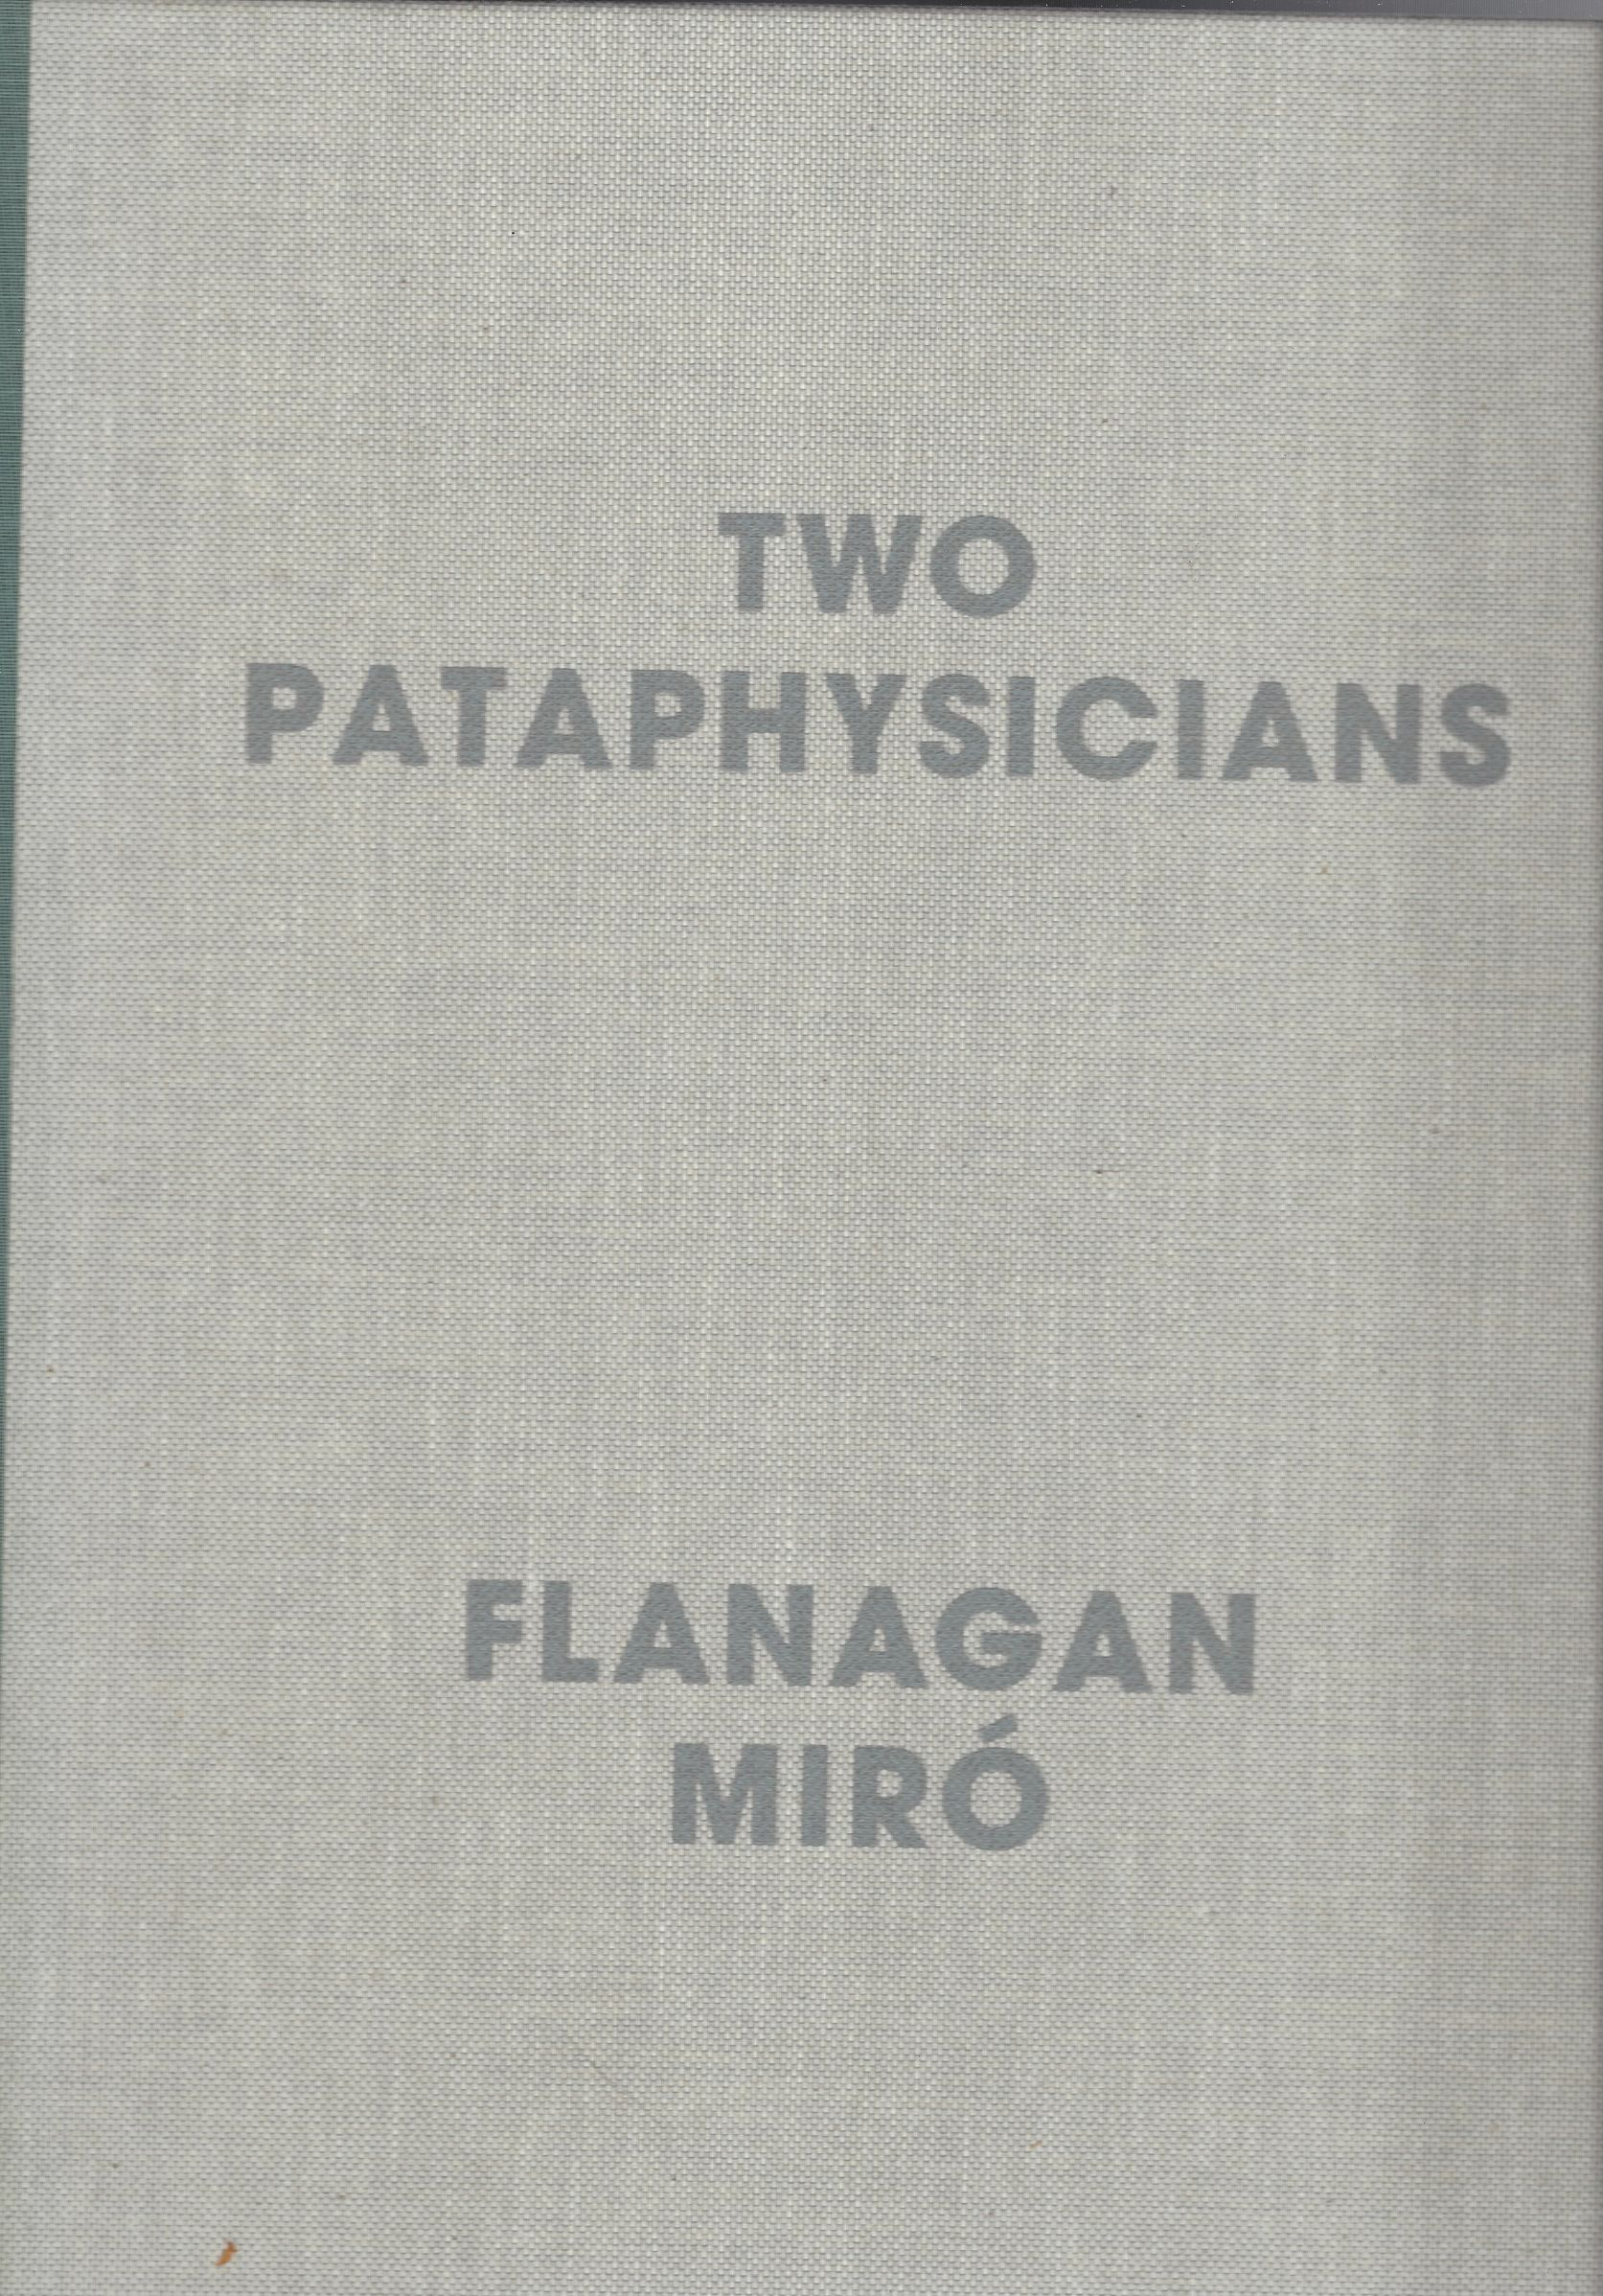 Image for Two Pataphysicians: Flanagan, Miro